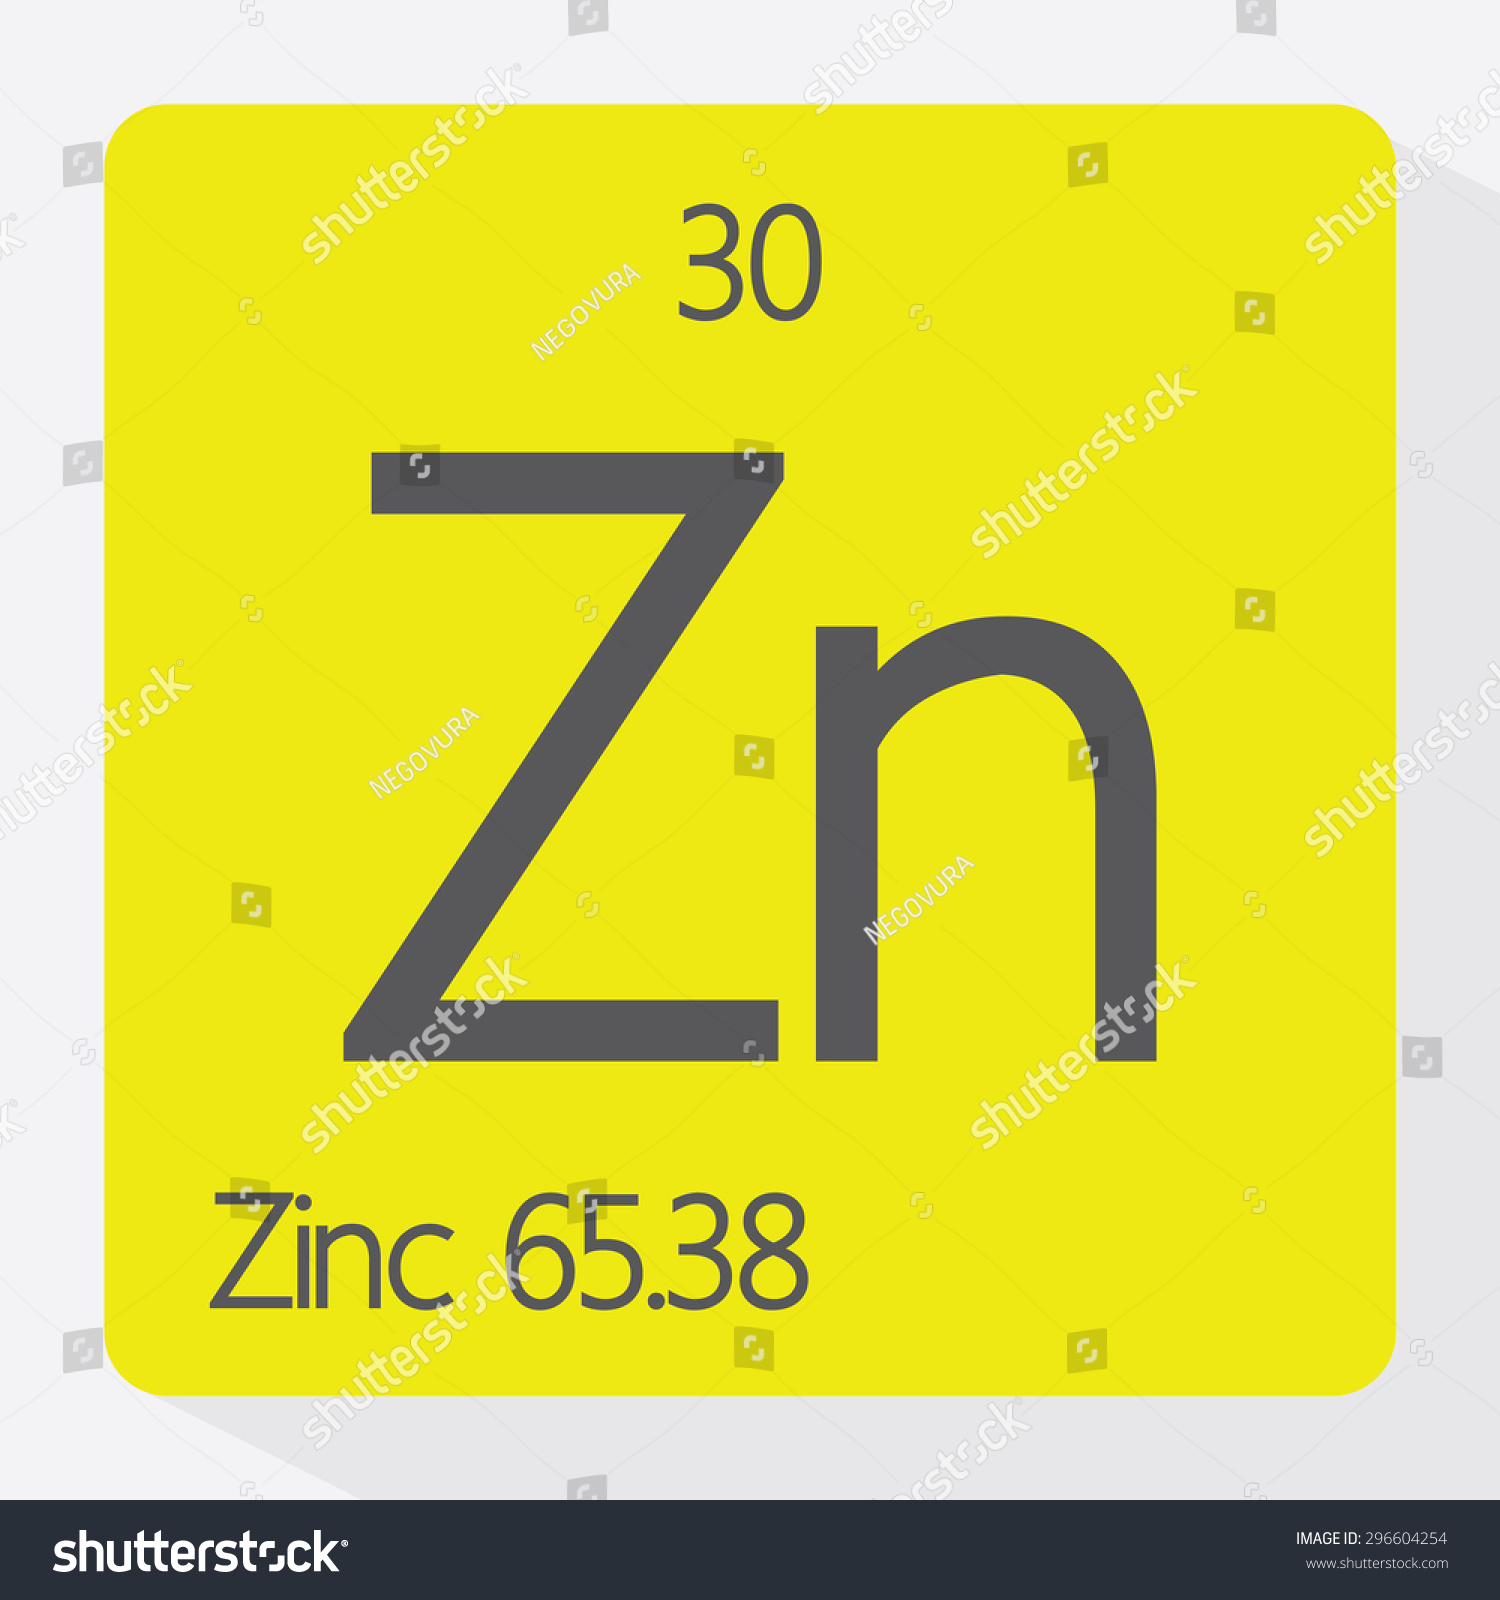 Zinc in periodic table choice image periodic table images periodic table for zinc images periodic table images periodic table zinc choice image periodic table images gamestrikefo Gallery